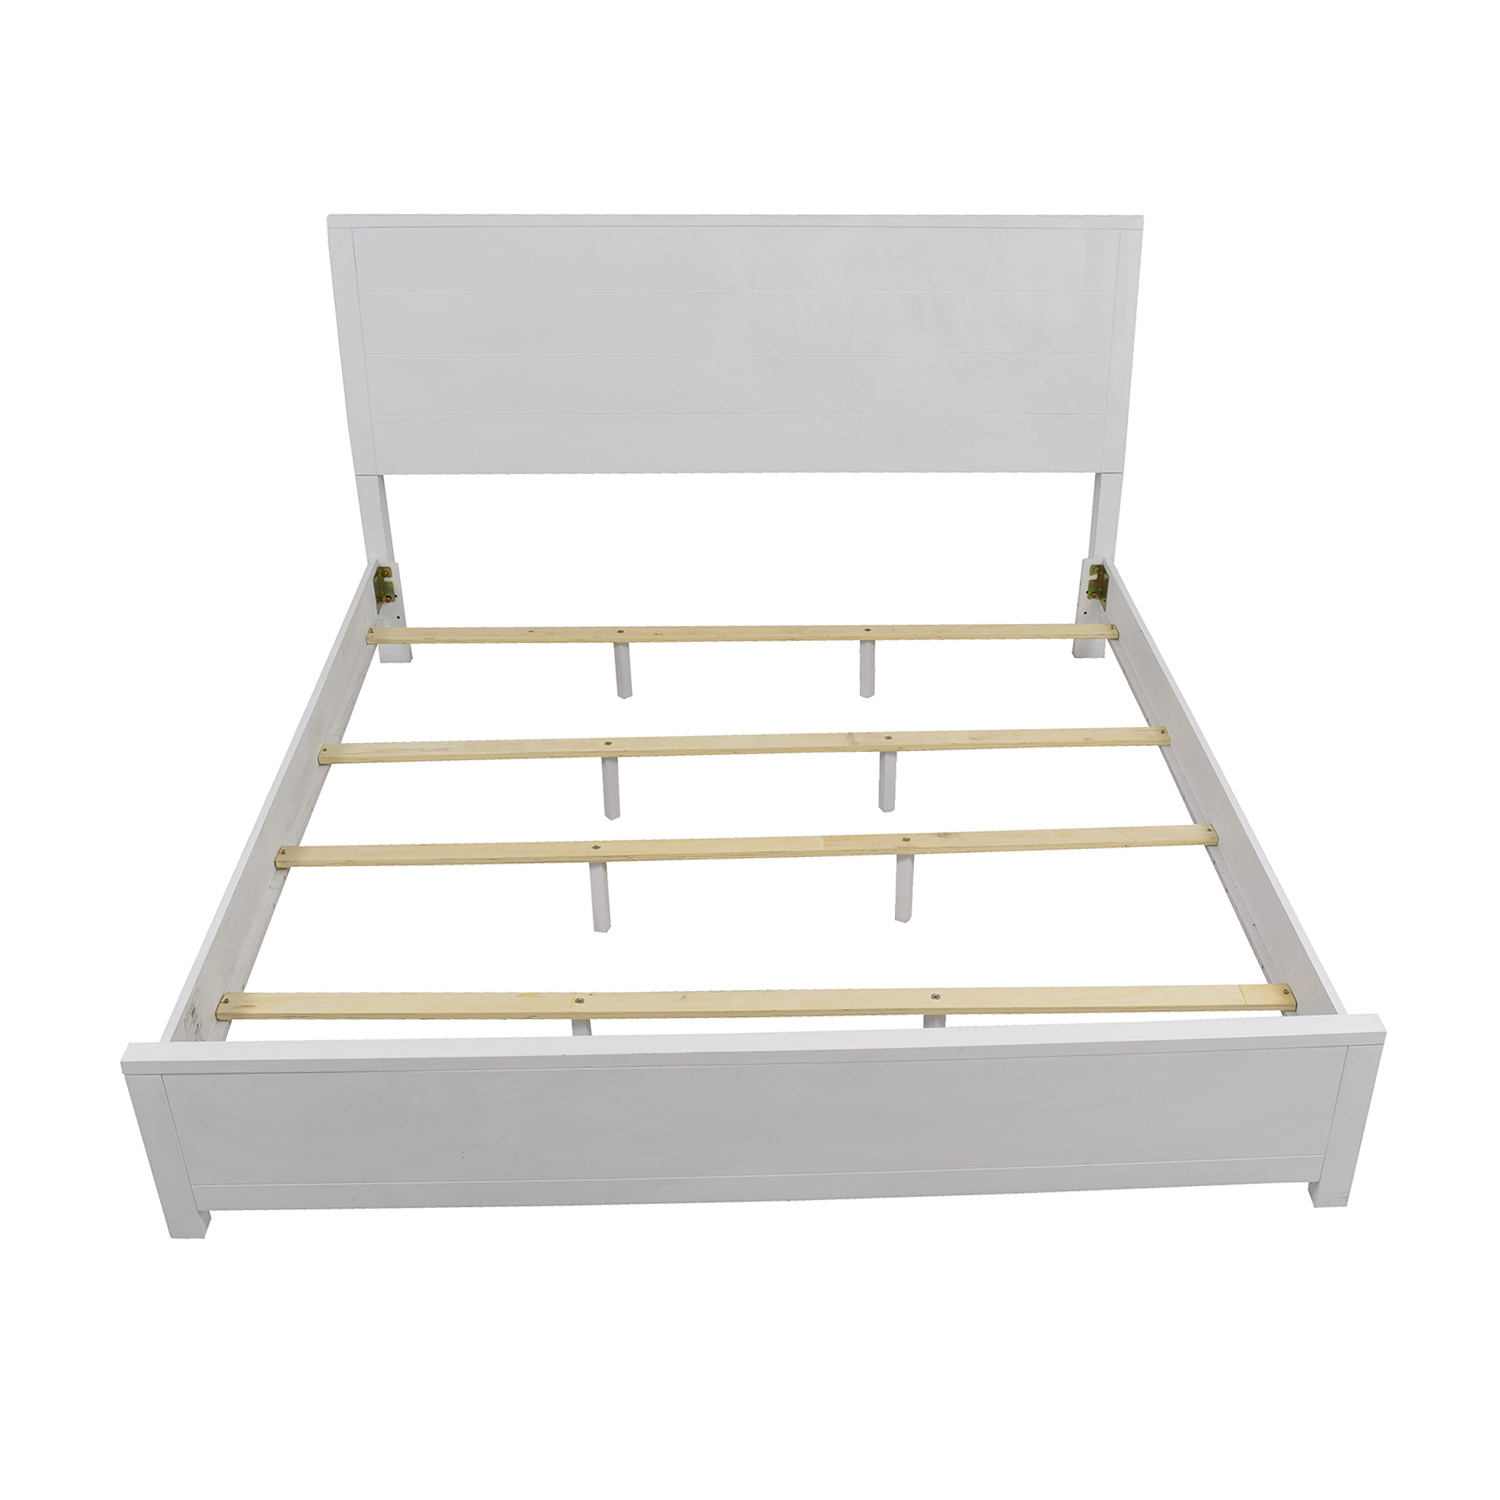 Large size of bed framesused king size bed frame for sale for Used bed frame with storage